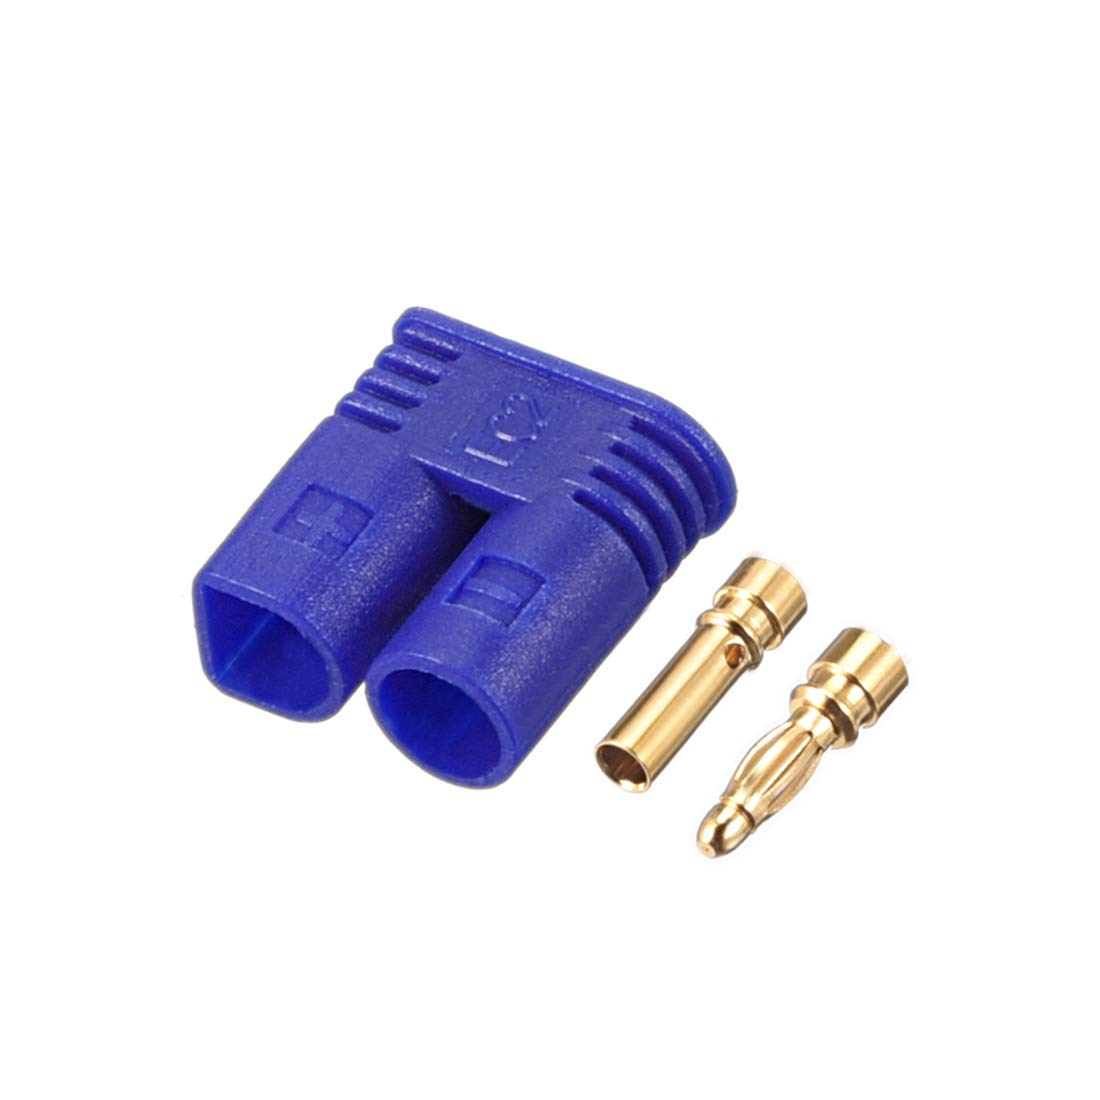 uxcell 4Sets 2MM Bullets Connectors Banana Plugs Male Female Plug Set with Housing #0226